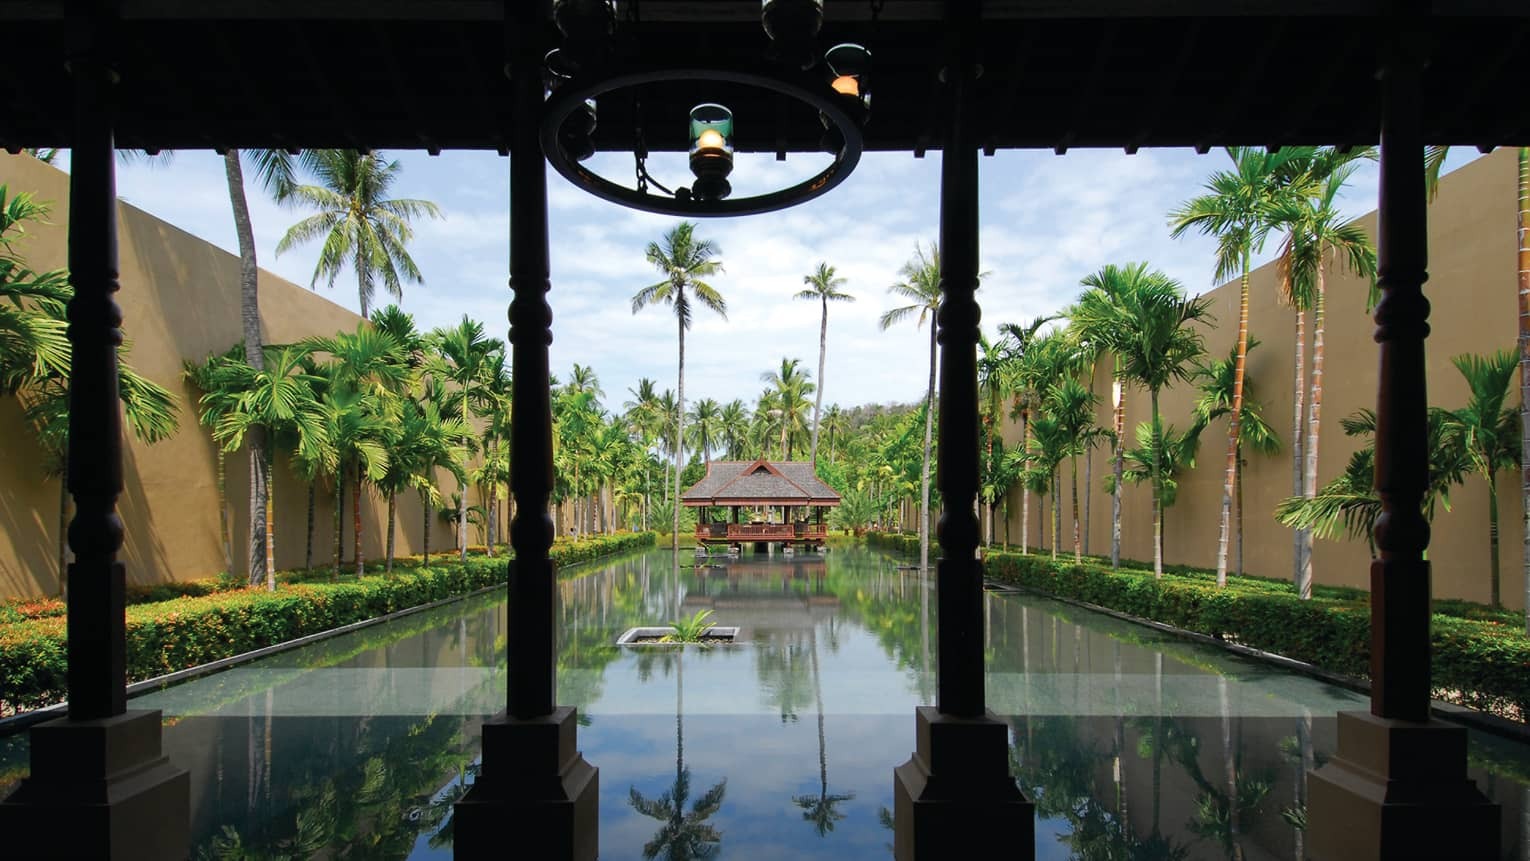 Wood gazebo at end of long reflection pond lined with palm trees